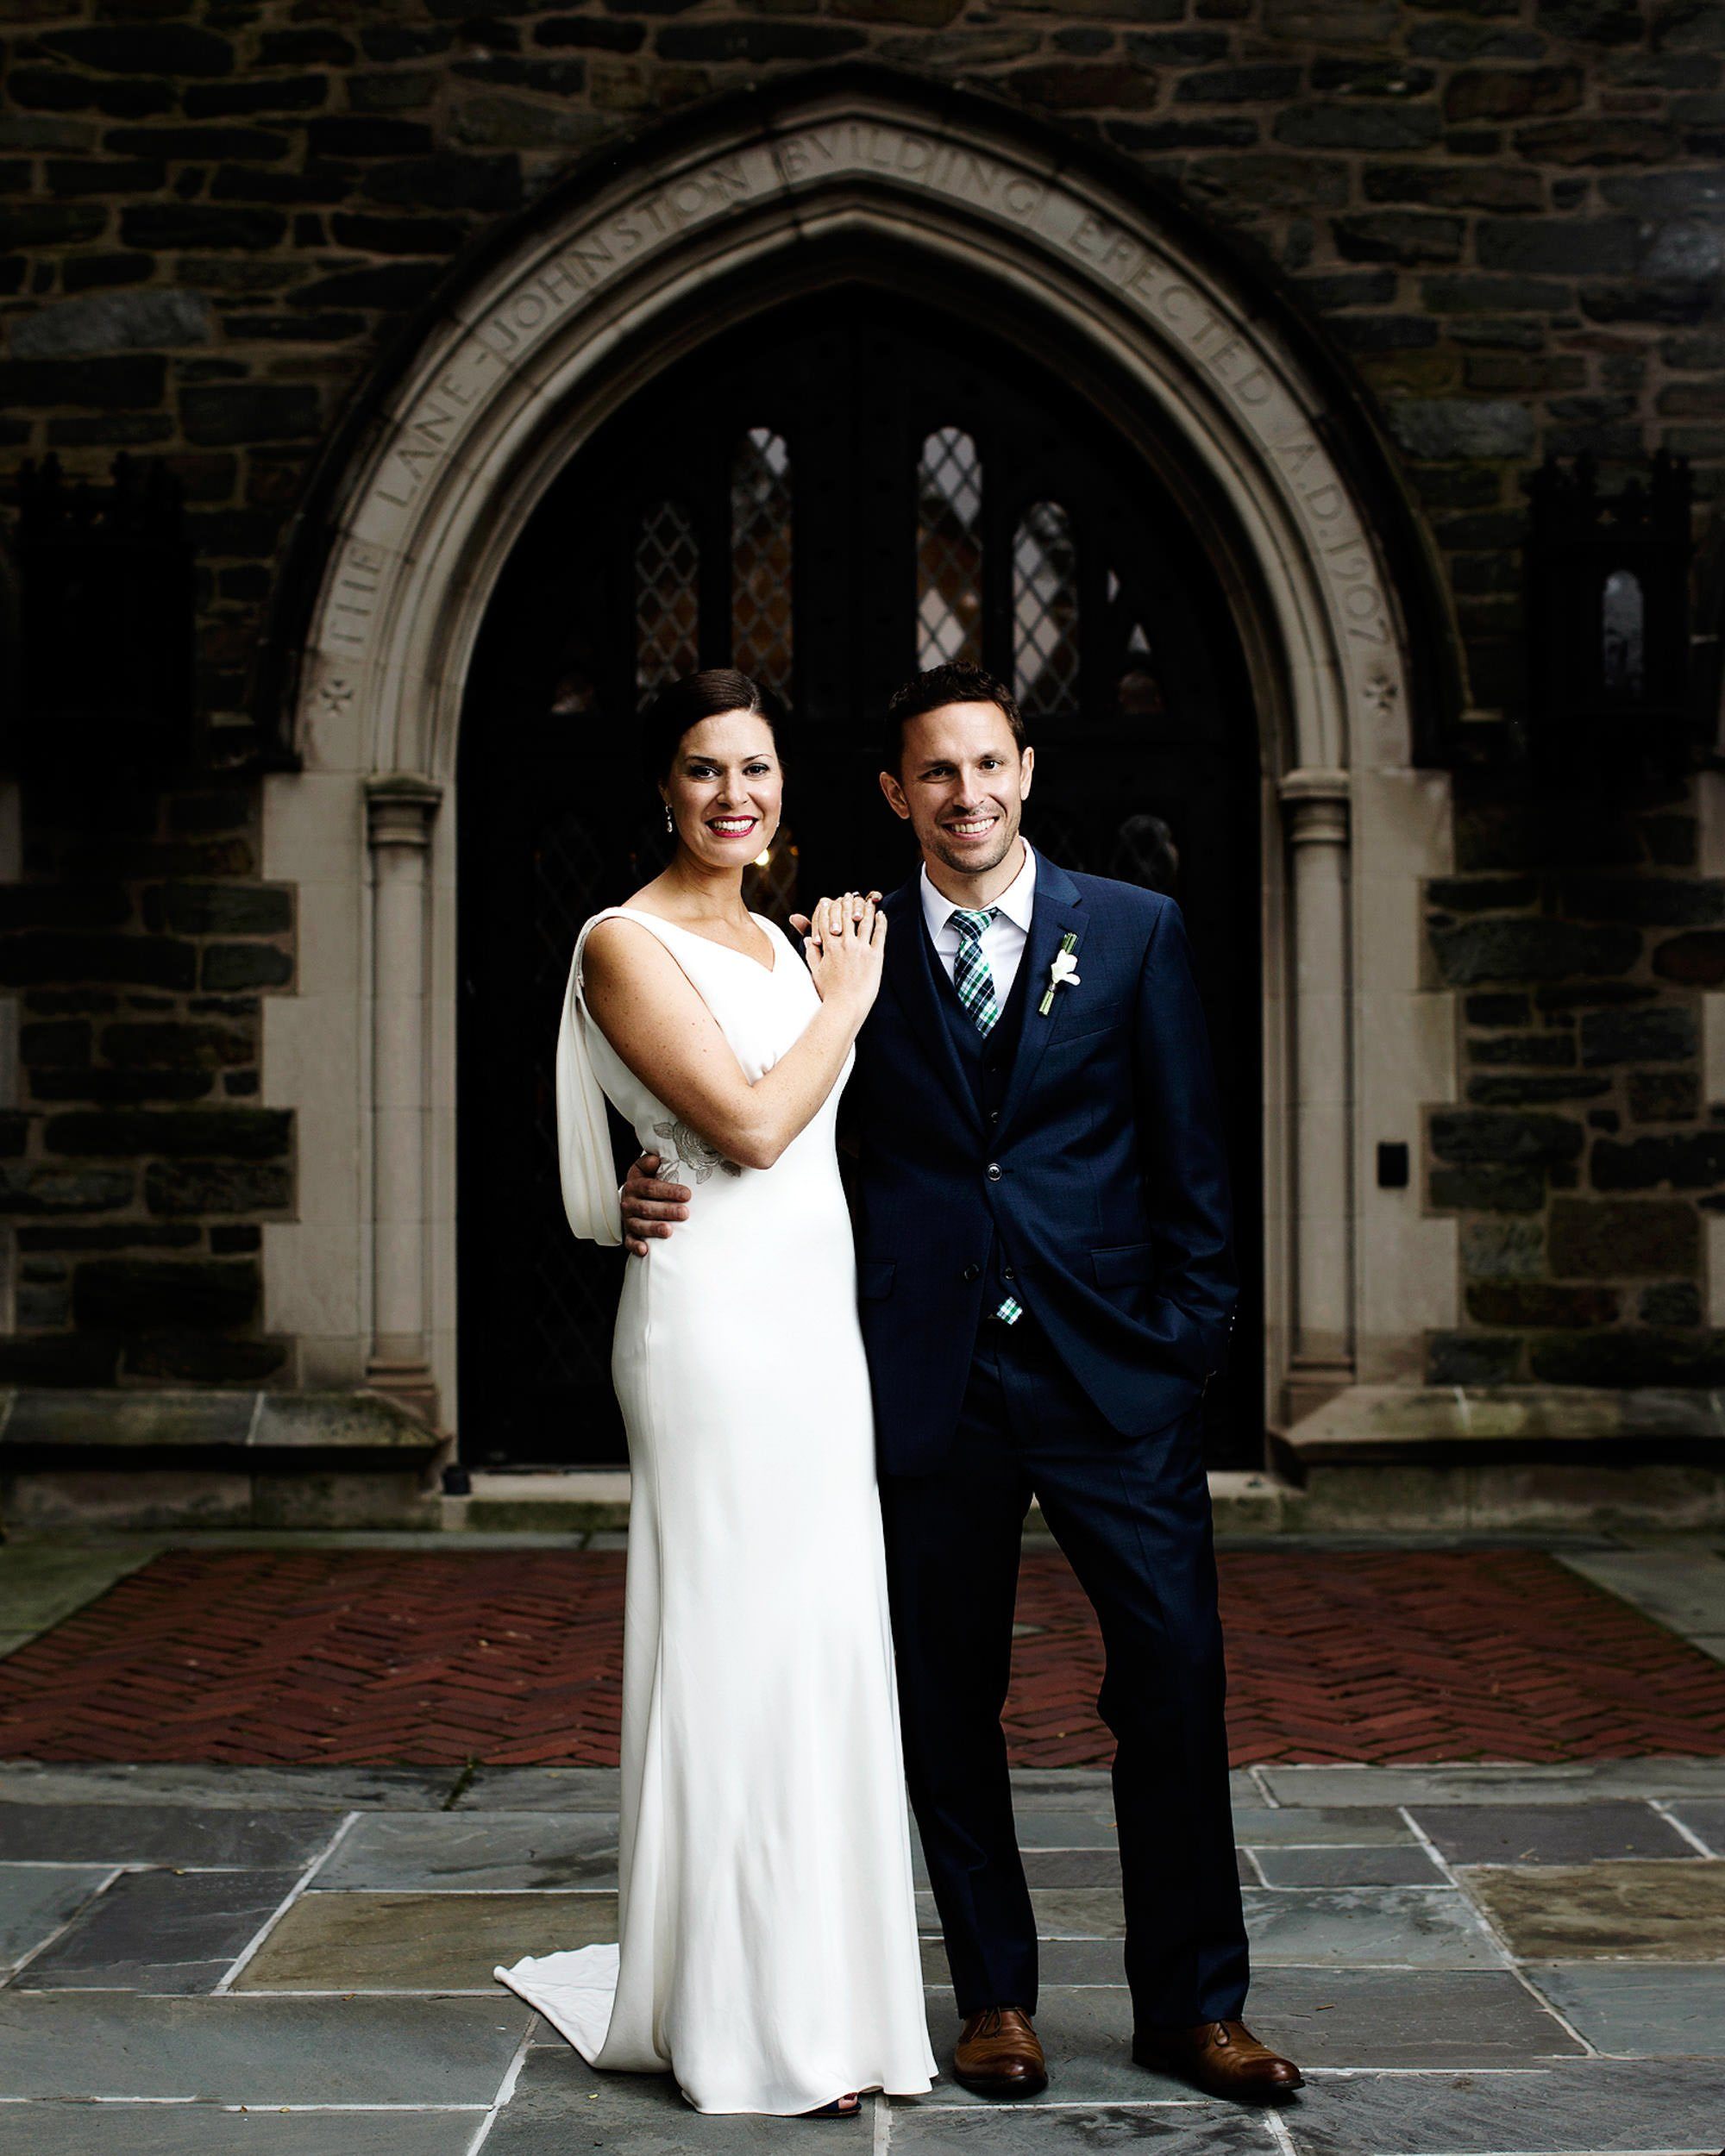 A portrait of the Bride and Groom at St. Alban's Church.